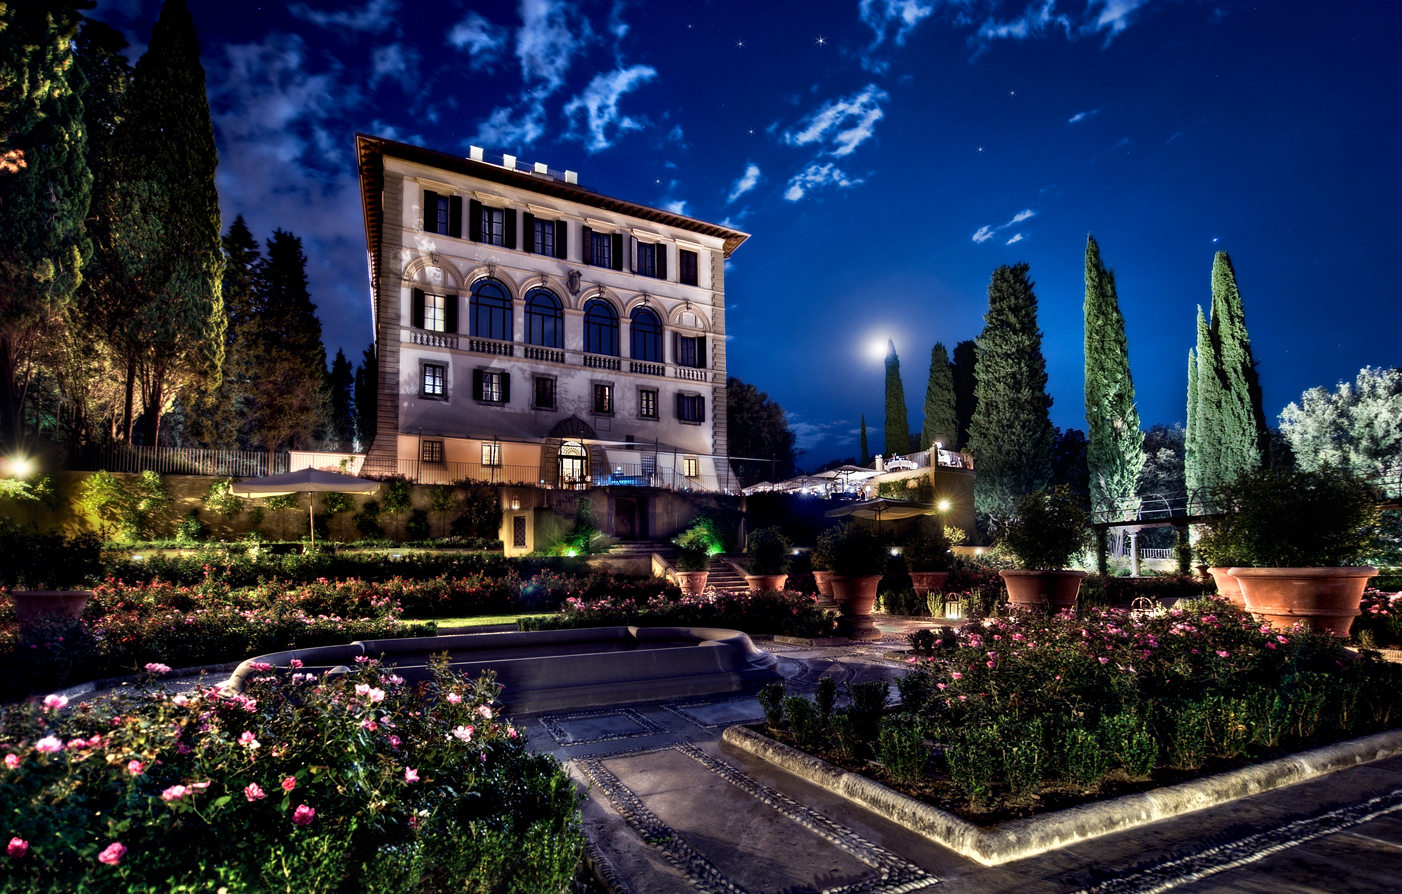 Italian Florence: Il Salviatino - Five Star Hotel In Tuscany